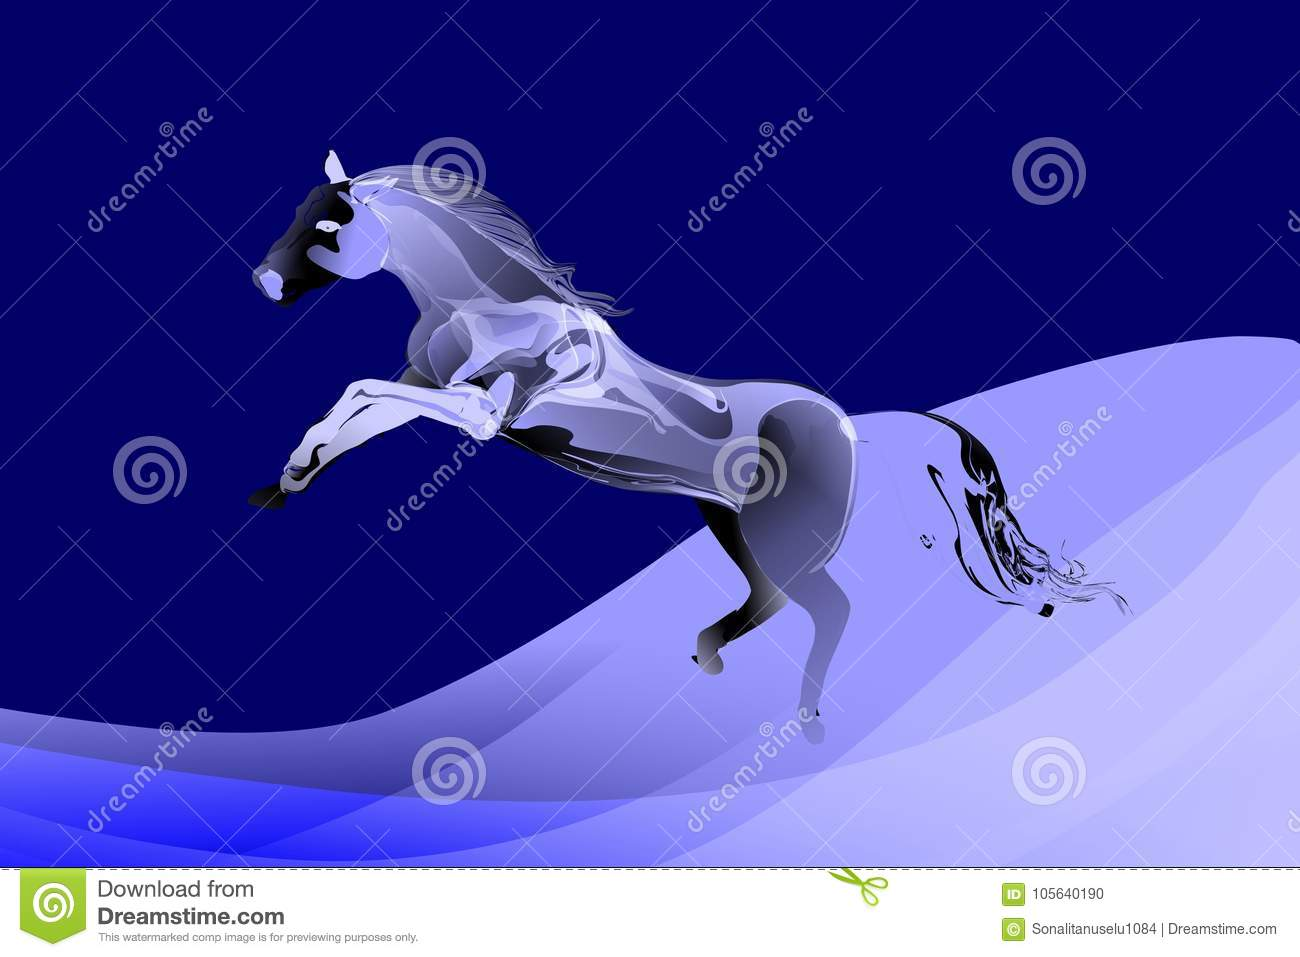 Abstract Vector Jumping Horse In Blue To White Tonal Colors With Wavy Background Stock Vector Illustration Of Concept Blurred 105640190